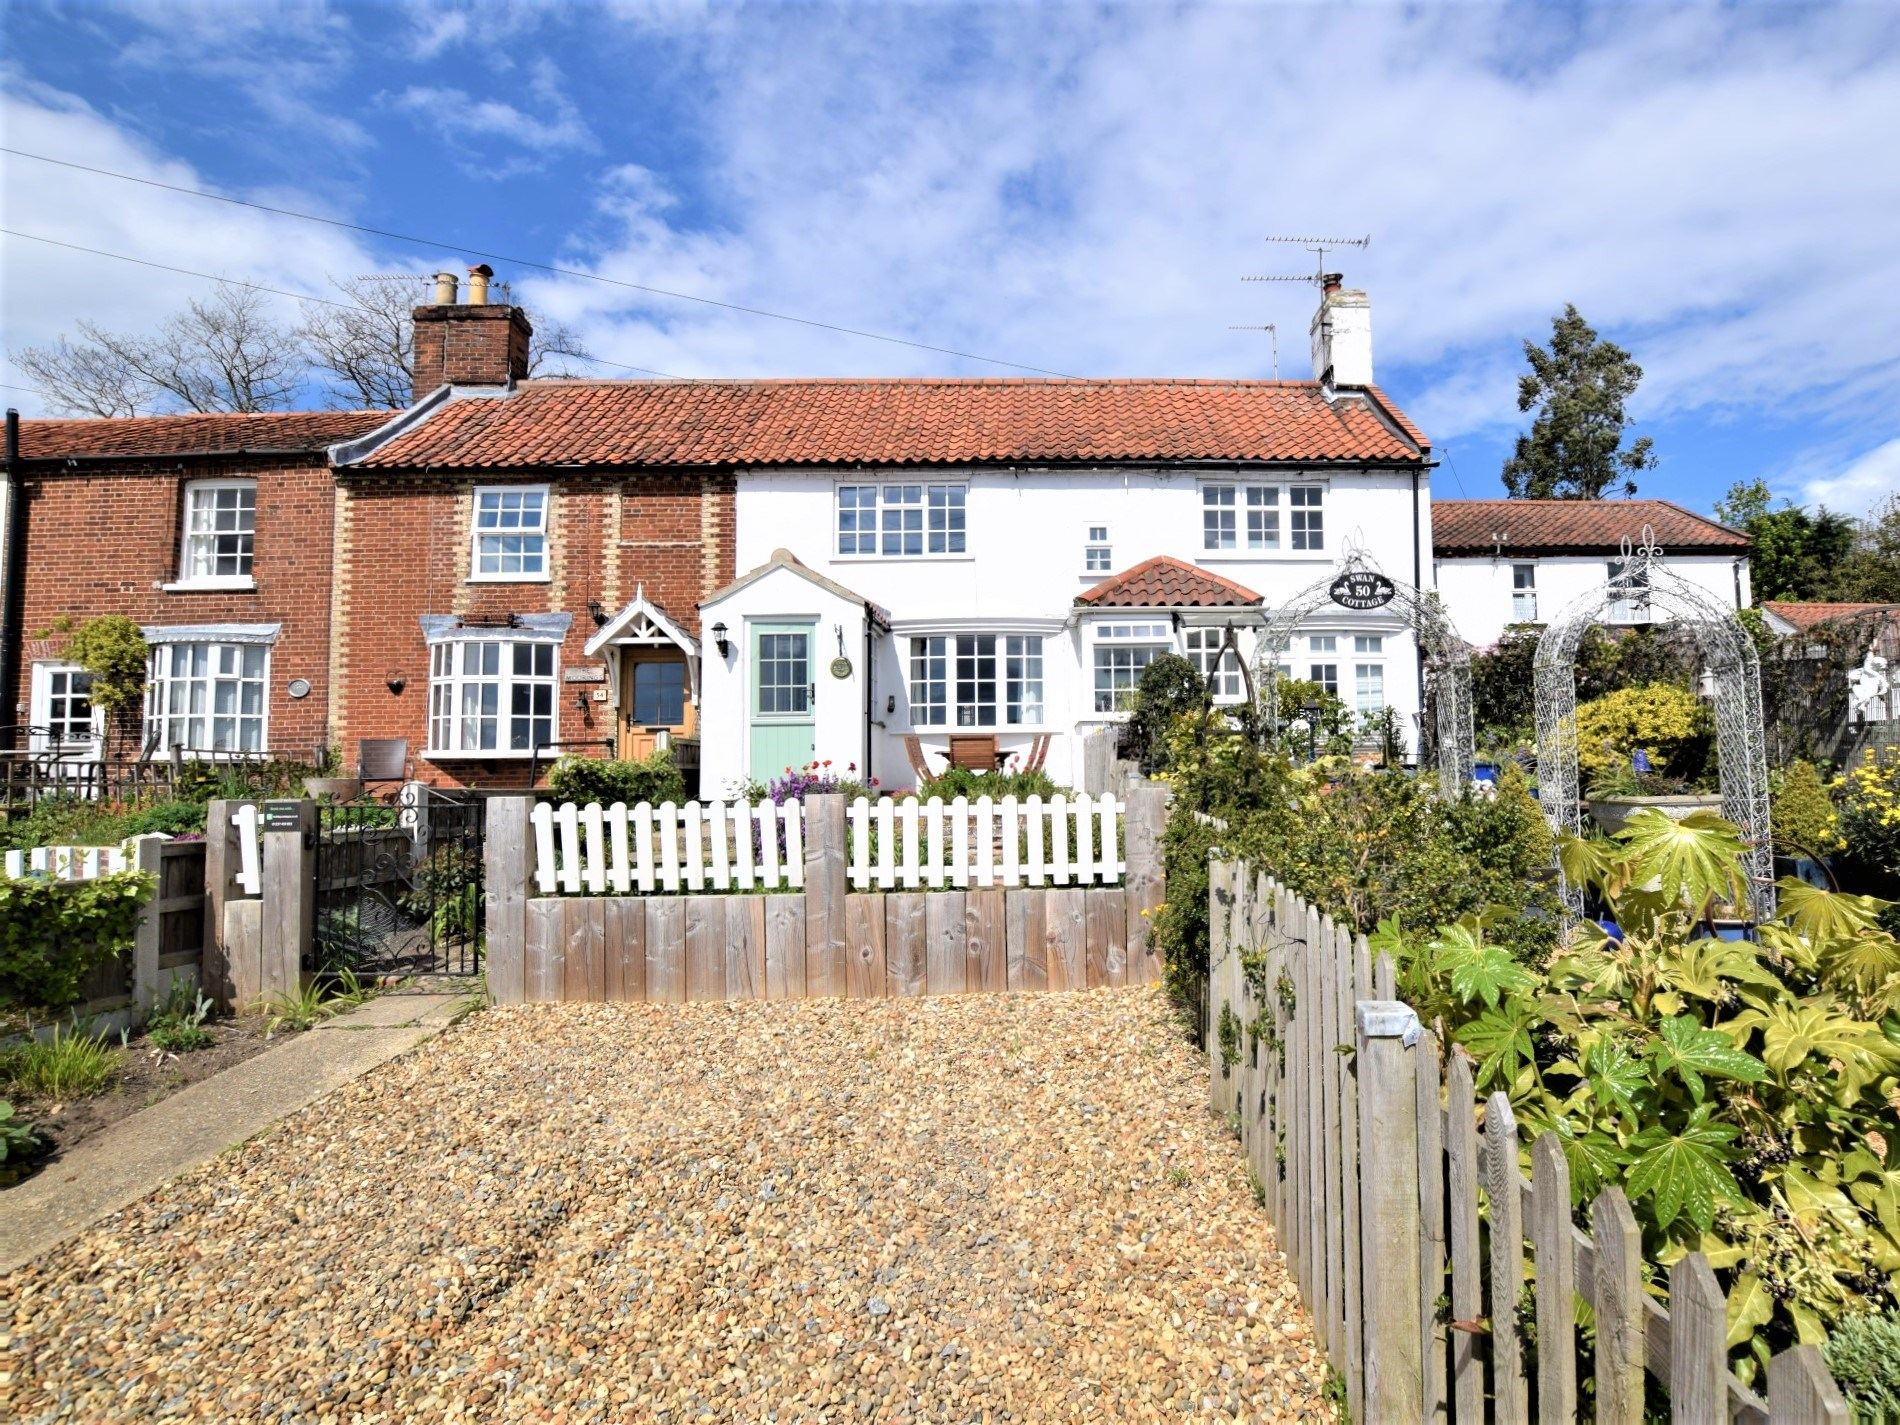 3 Bedroom Cottage in Norwich, East Anglia